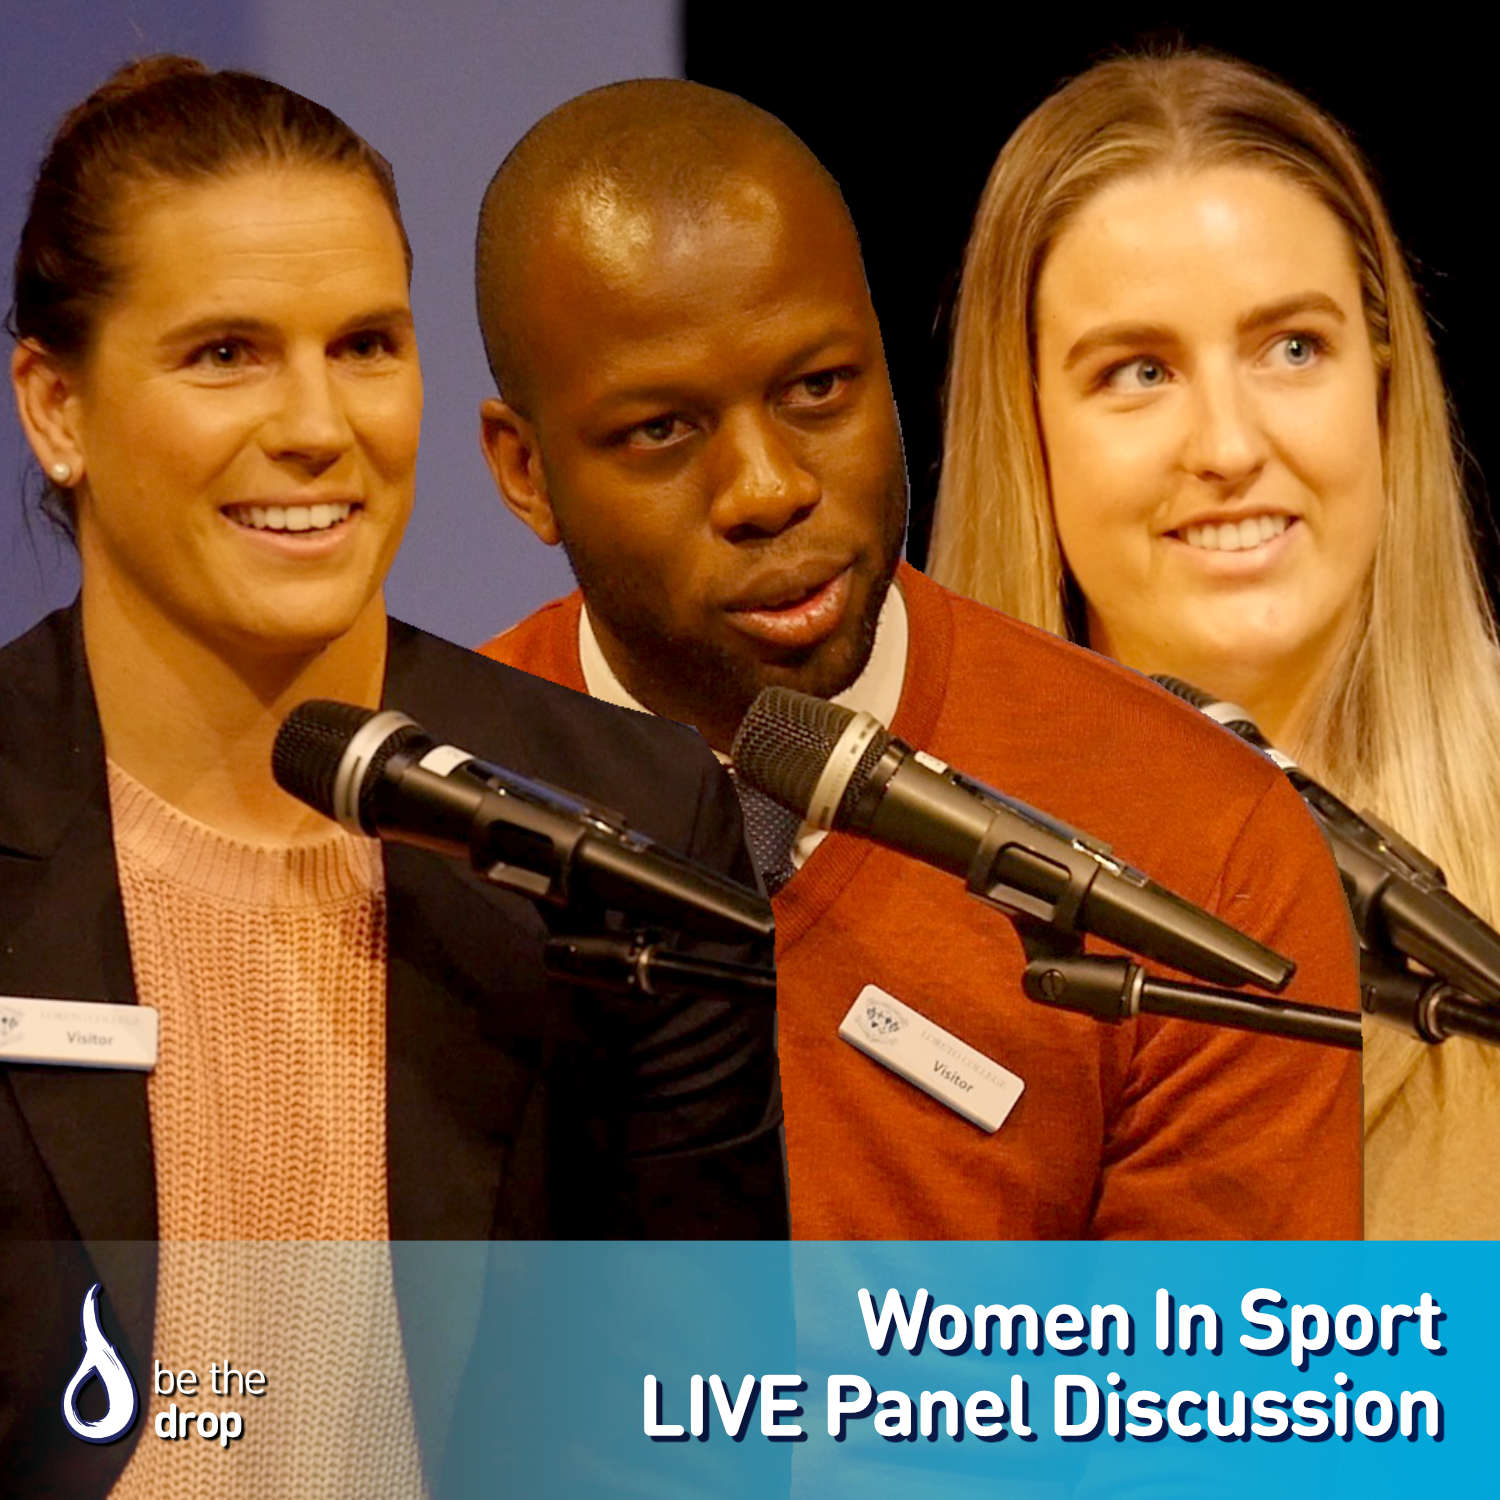 Women In Sport Live Panel Discussion at Loreto College